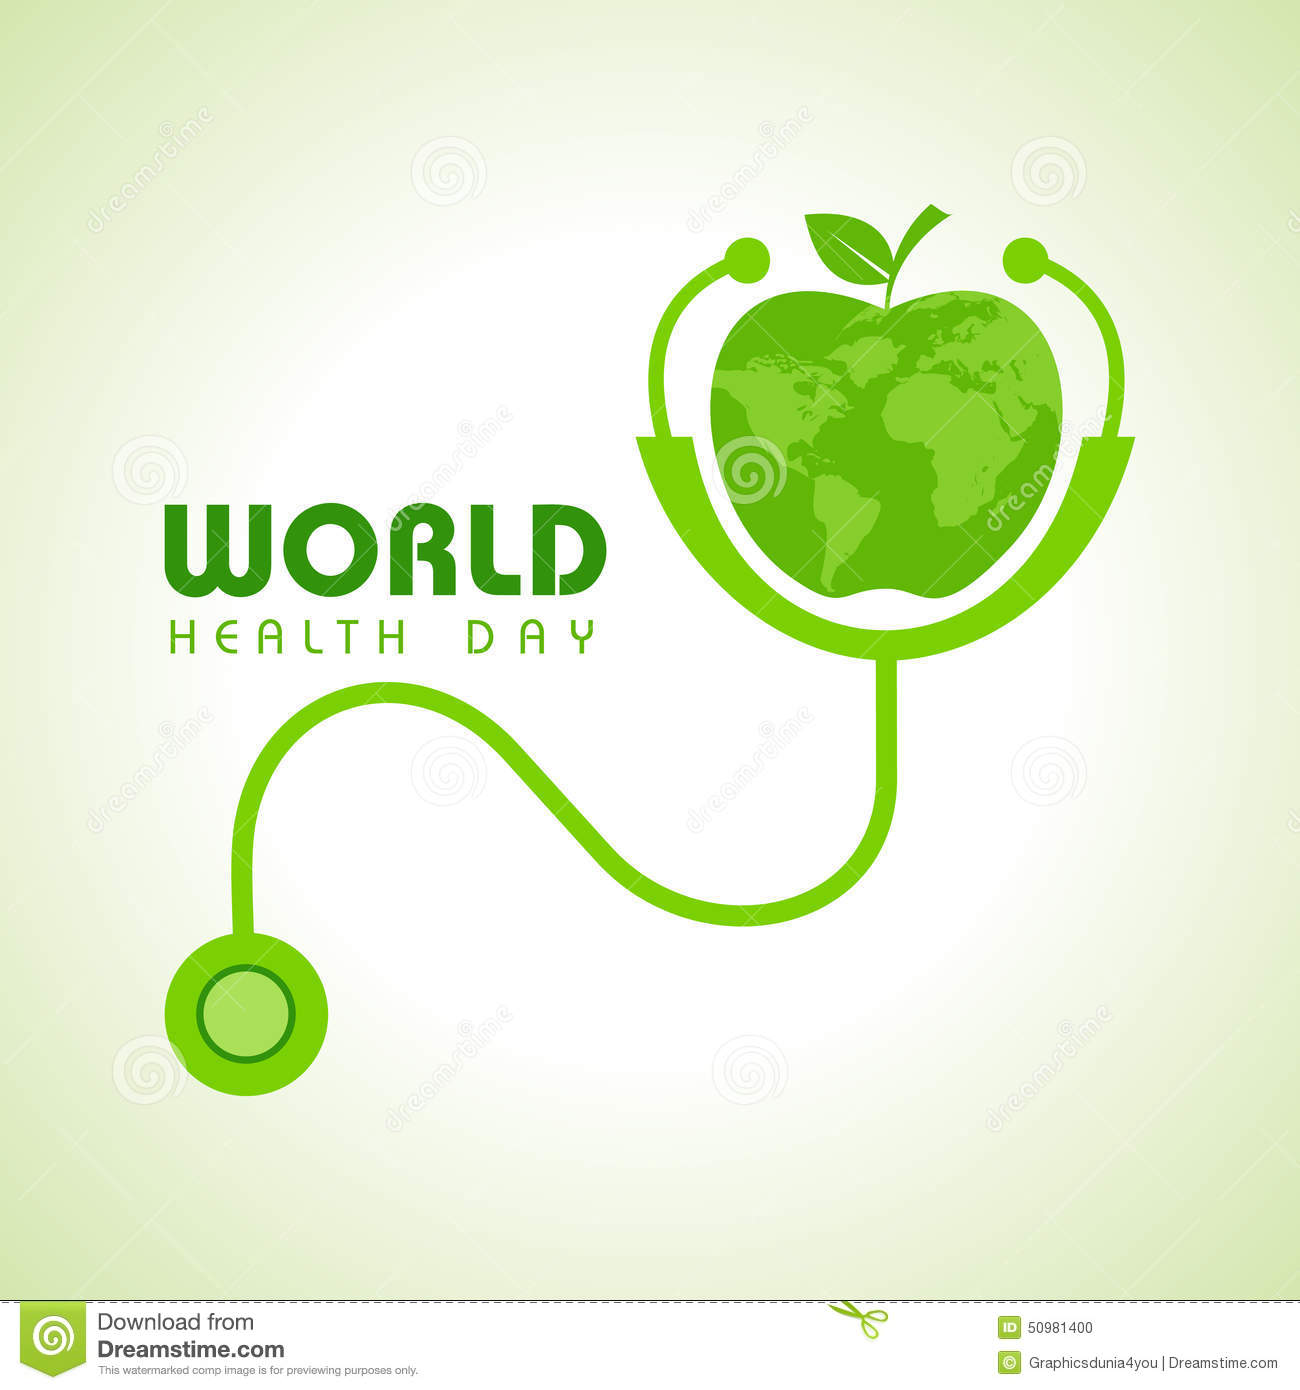 World Health Day Greetings